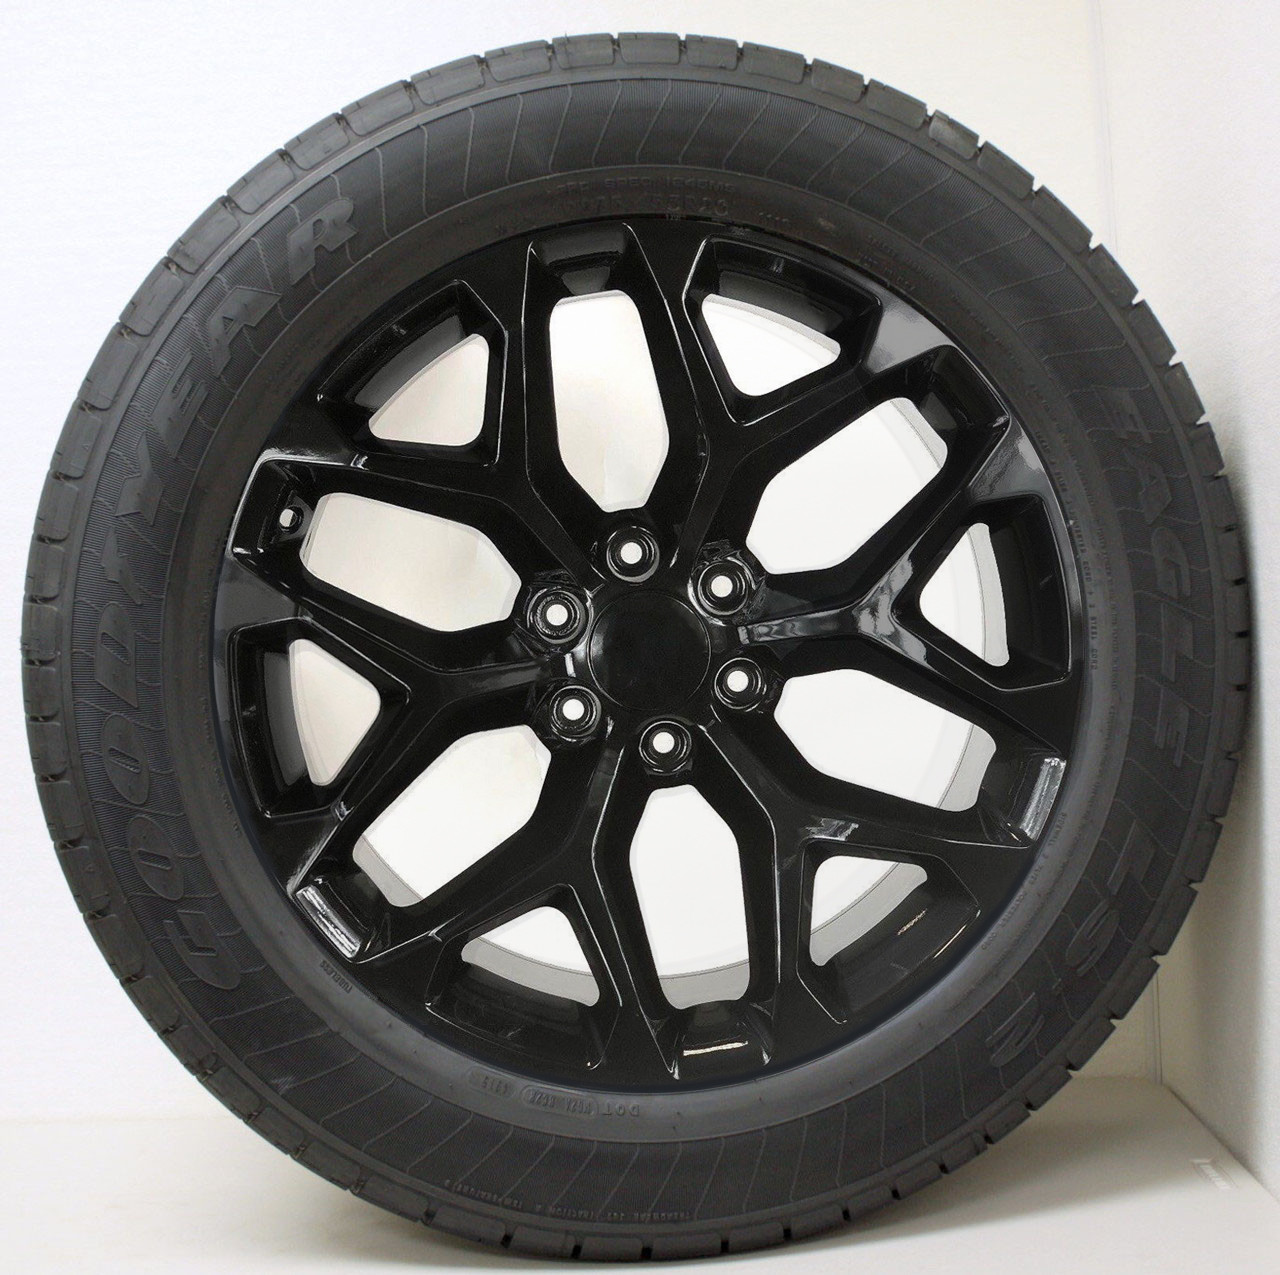 """Gloss Black 20"""" Snowflake Wheels with Goodyear Tires for Chevy Silverado, Tahoe, Suburban - New Set of 4"""